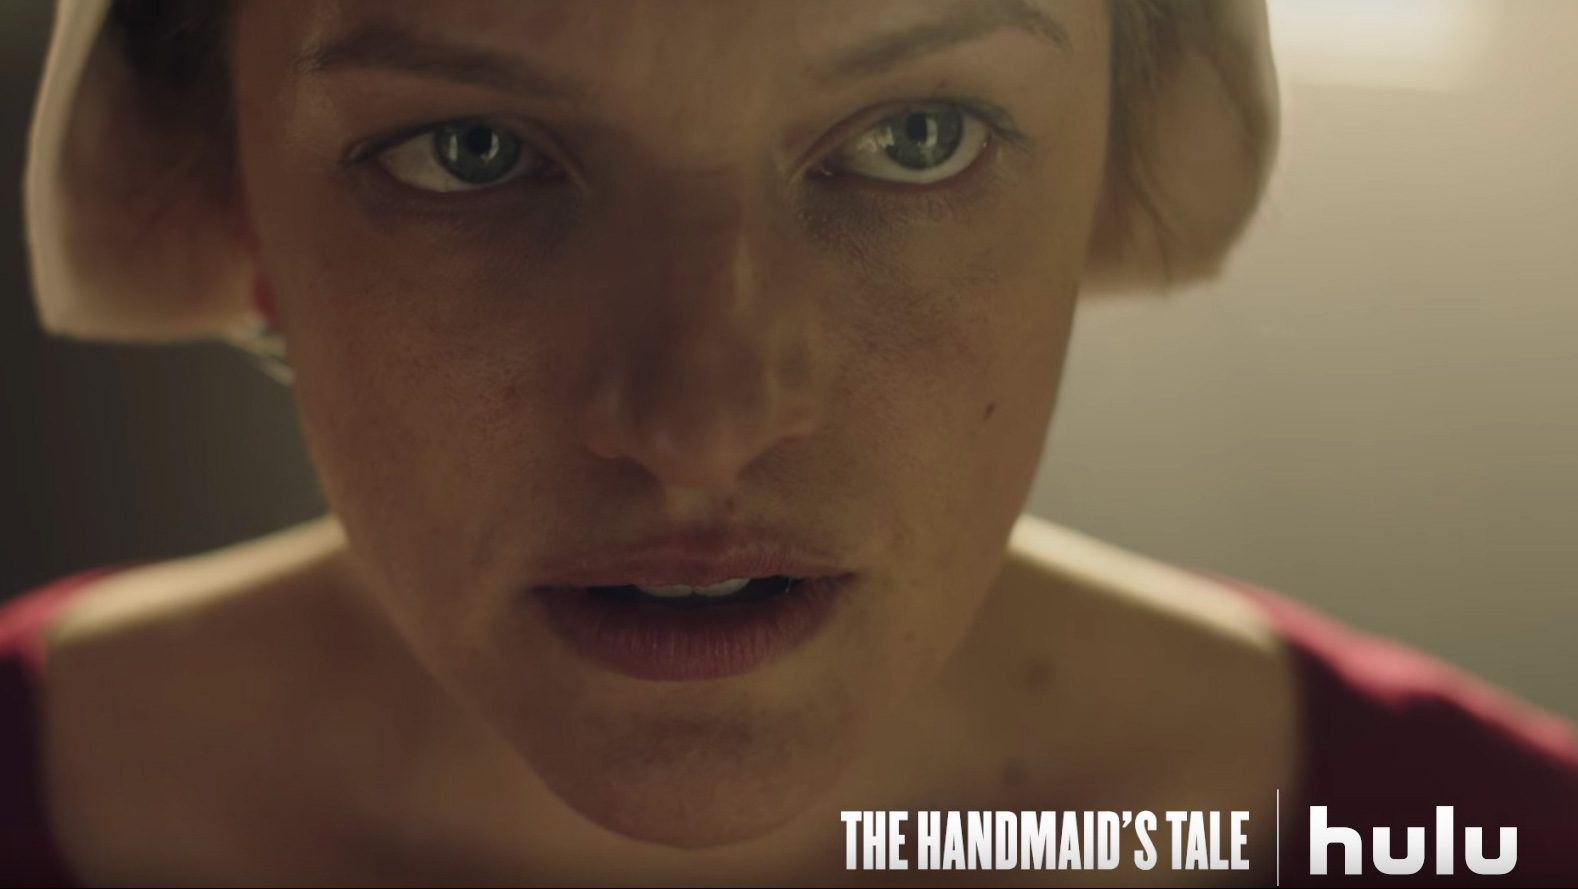 Watch the Chilling, Dystopian Trailer for Hulu's 'Handmaid's Tale'